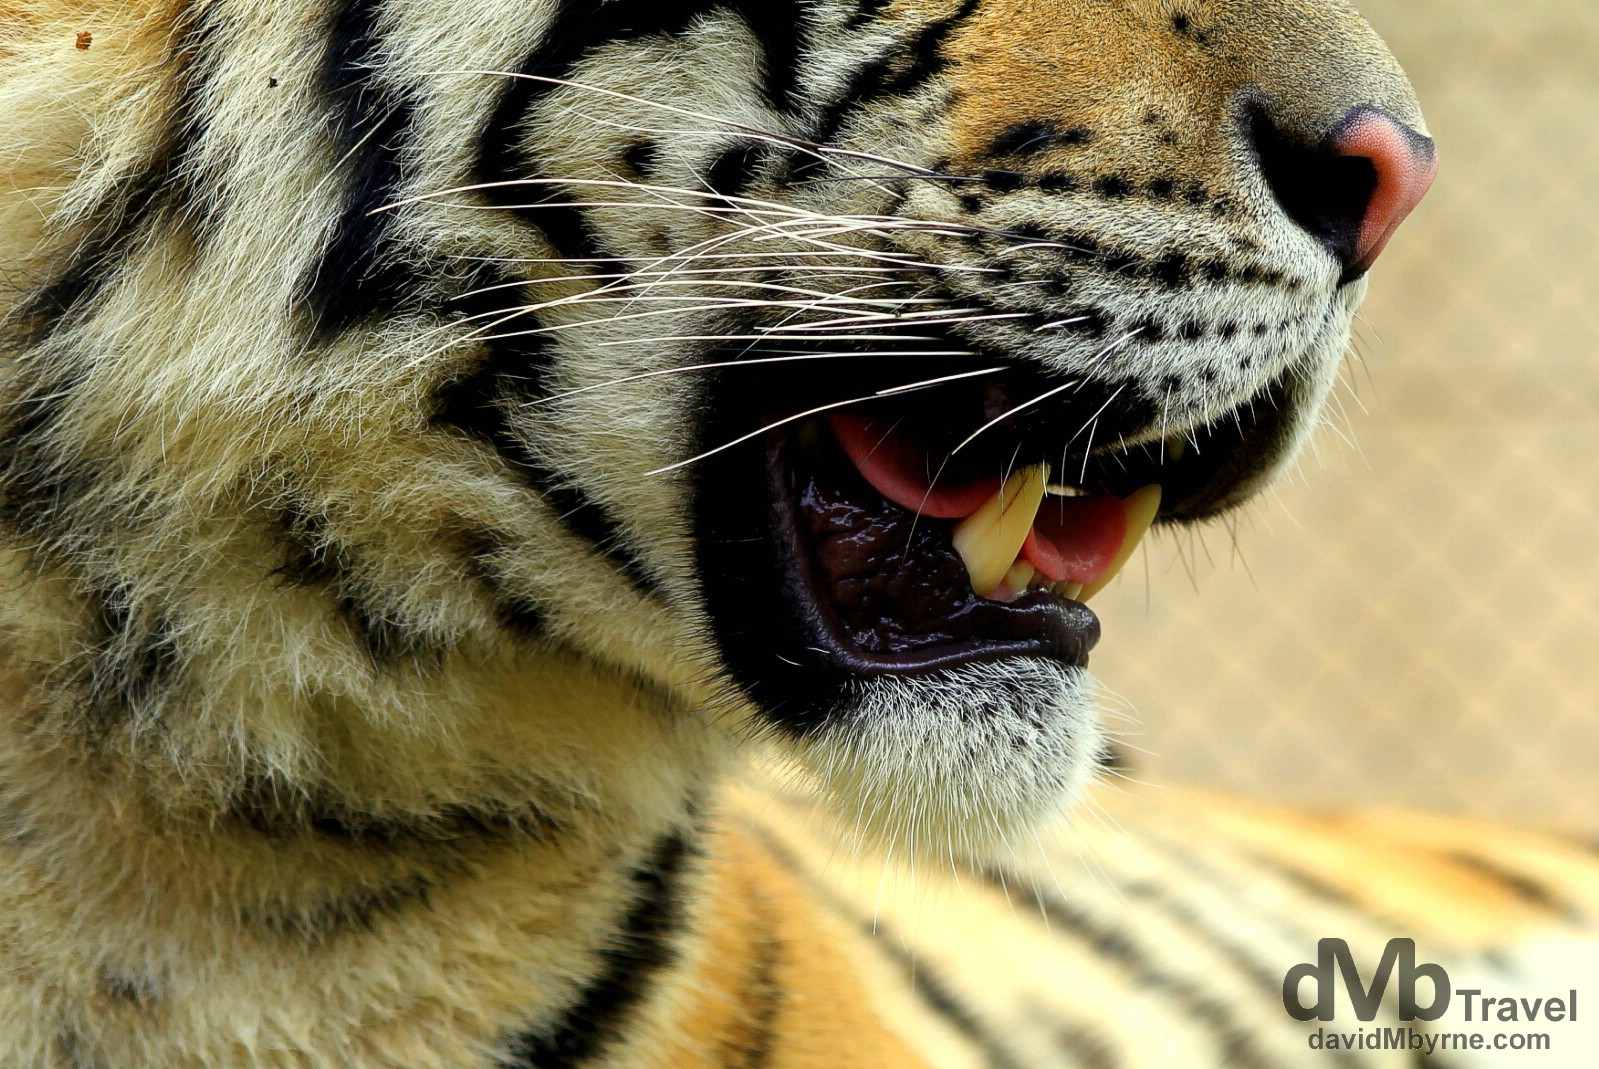 Whiskers & teeth. A tiger in Tiger Kingdom on the outskirts of Chiang Mai, northern Thailand. March 14th 2012.